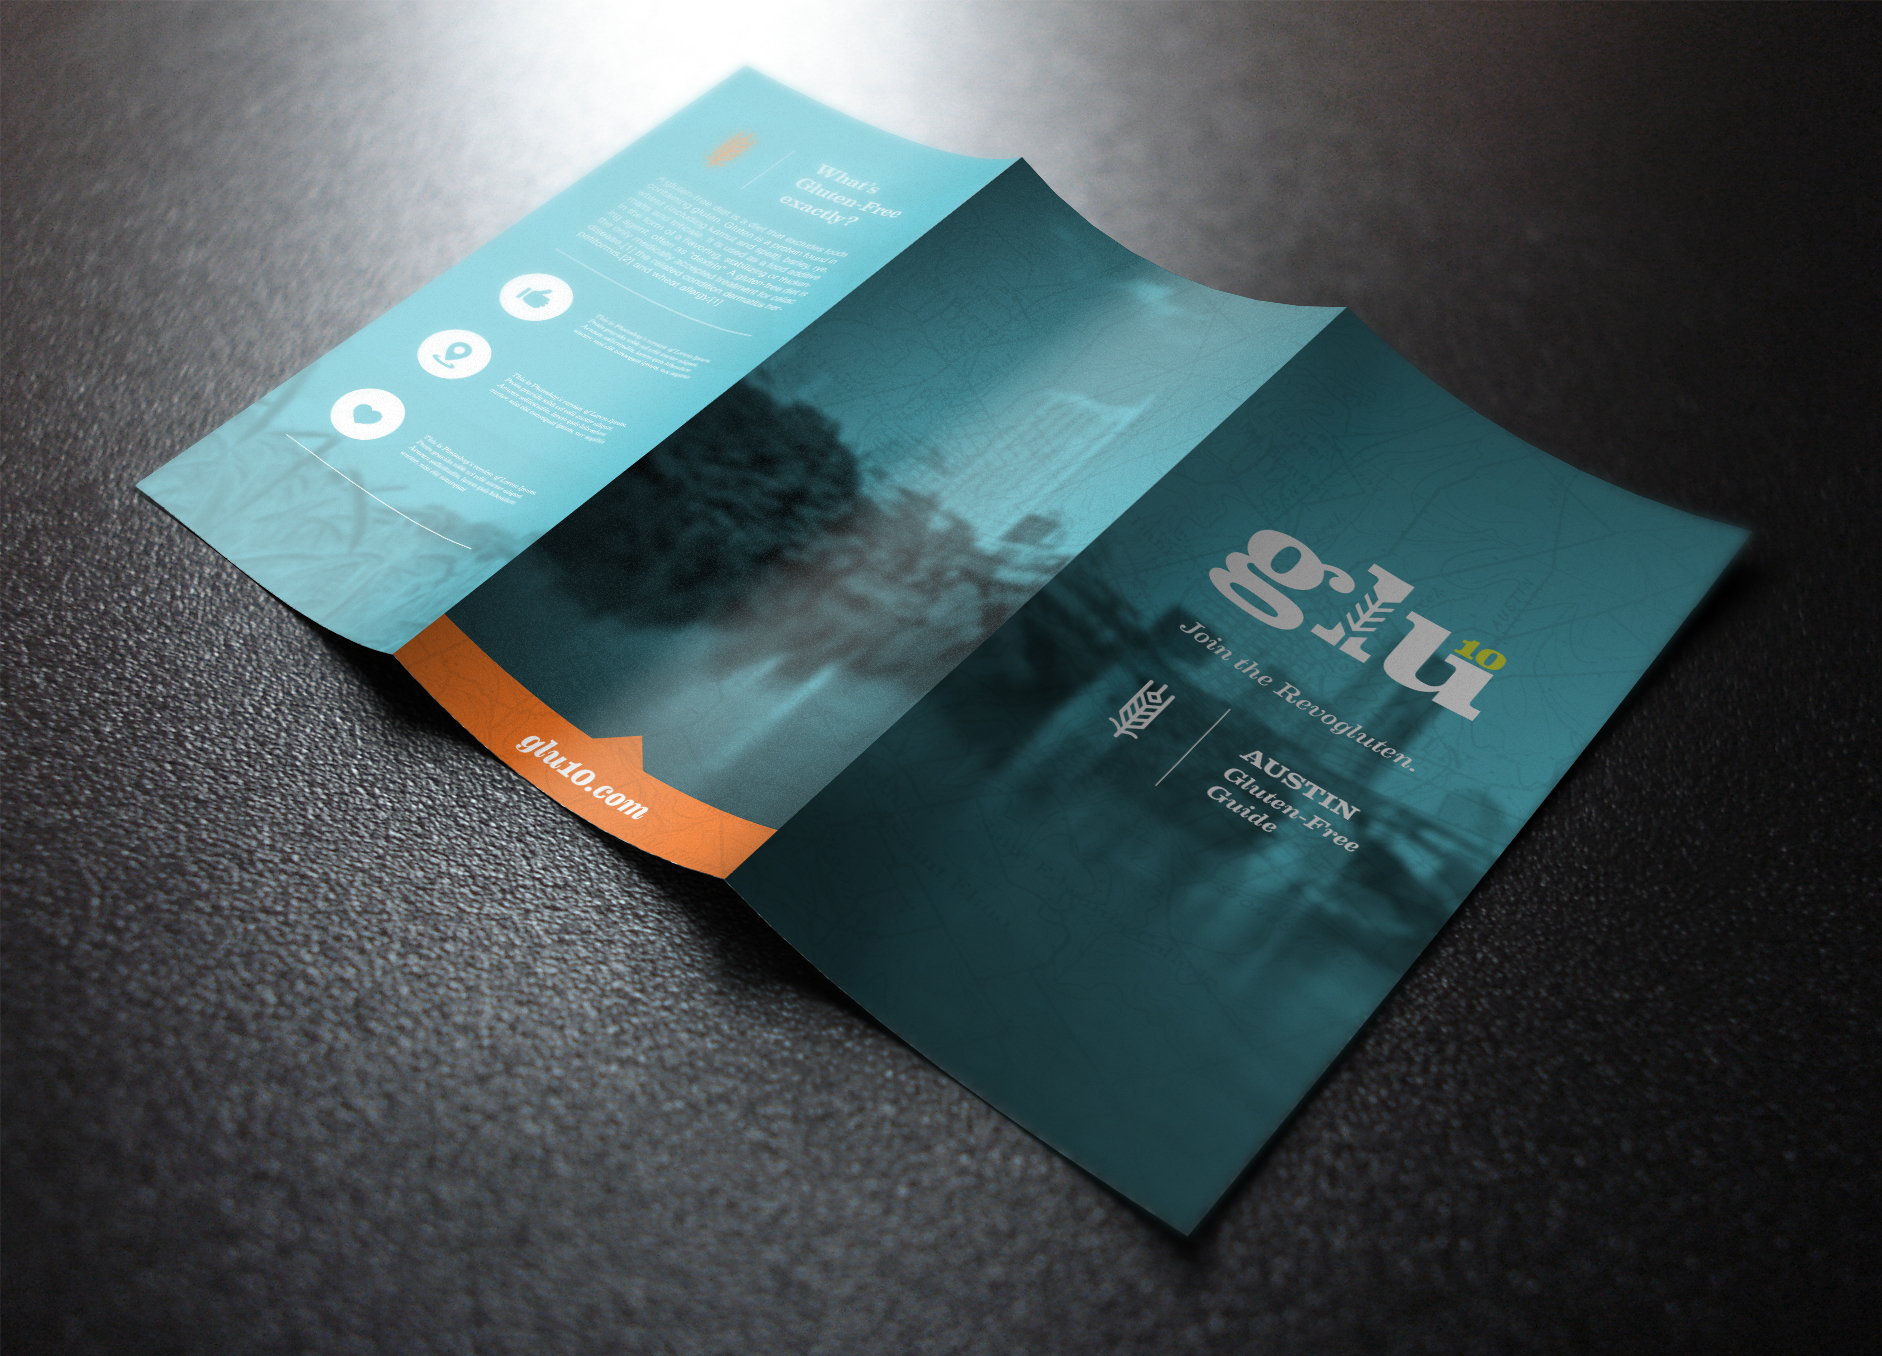 How to Design a Stunning Brochure  30 Expert Tips and Templates     Make the brochure worth keeping